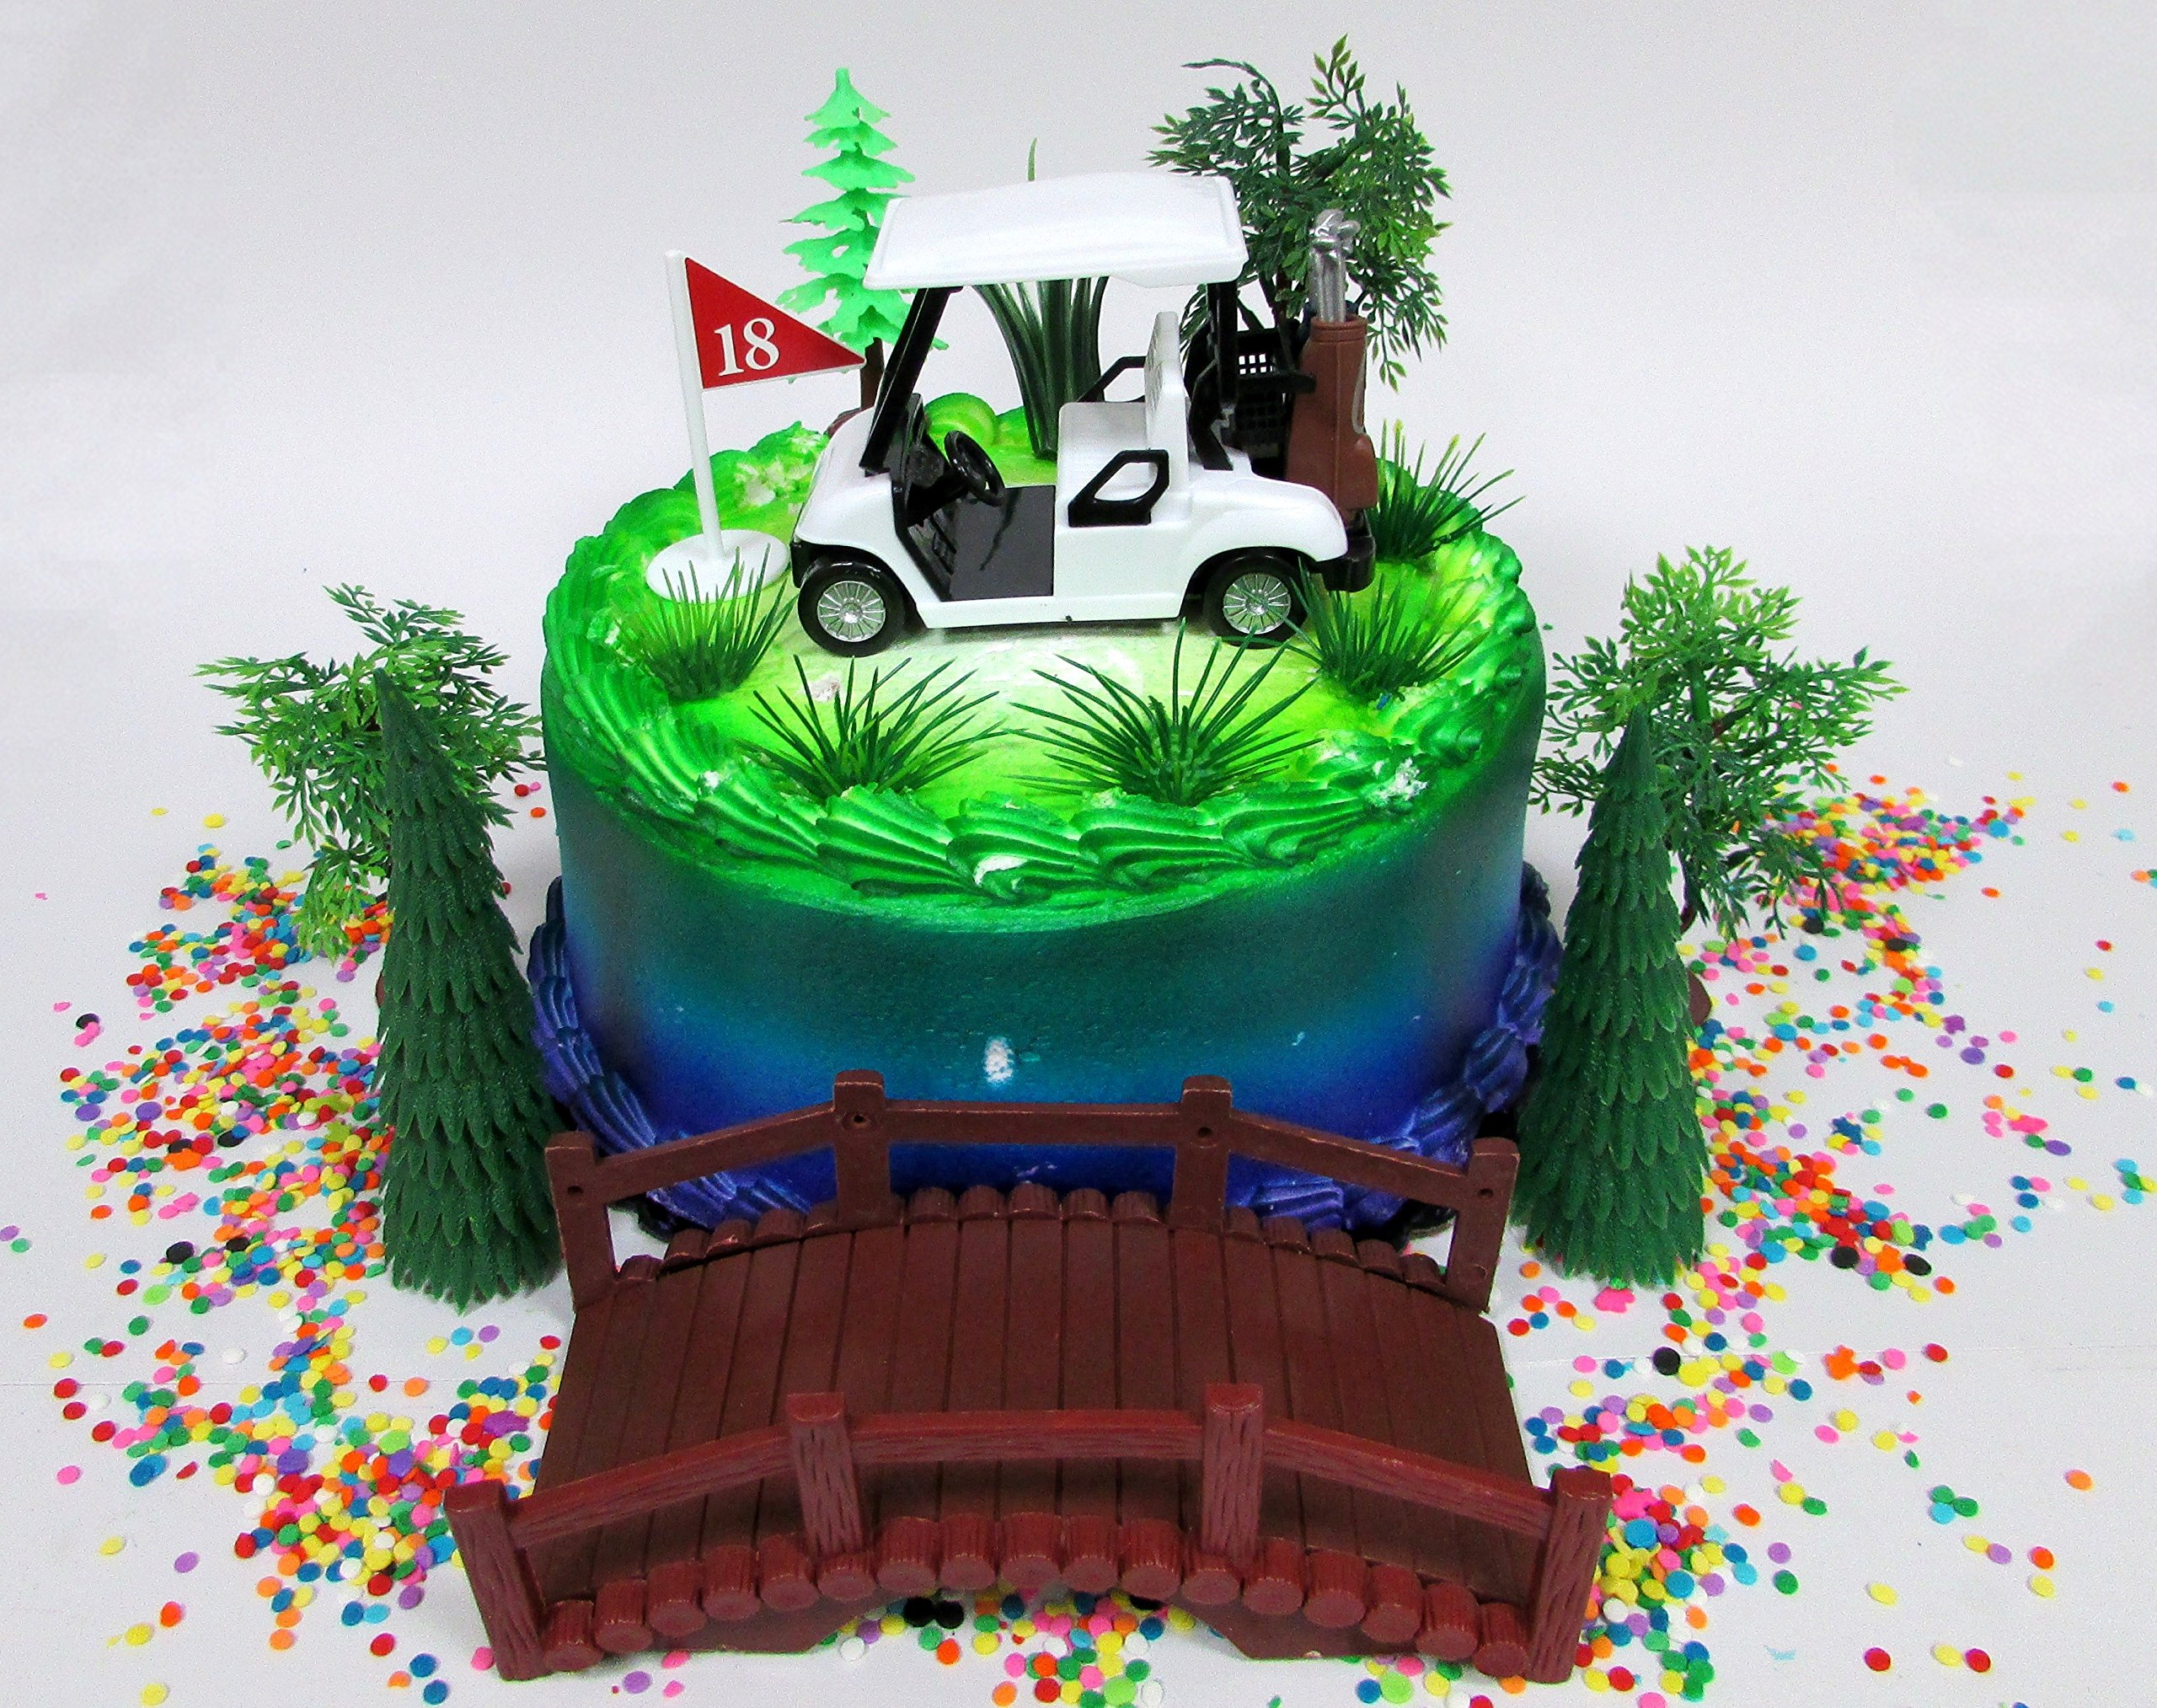 Golfing Themed 12 Piece Golfer Birthday Cake Topper Set Featuring Golf Cart and Decorative Themed Accessories